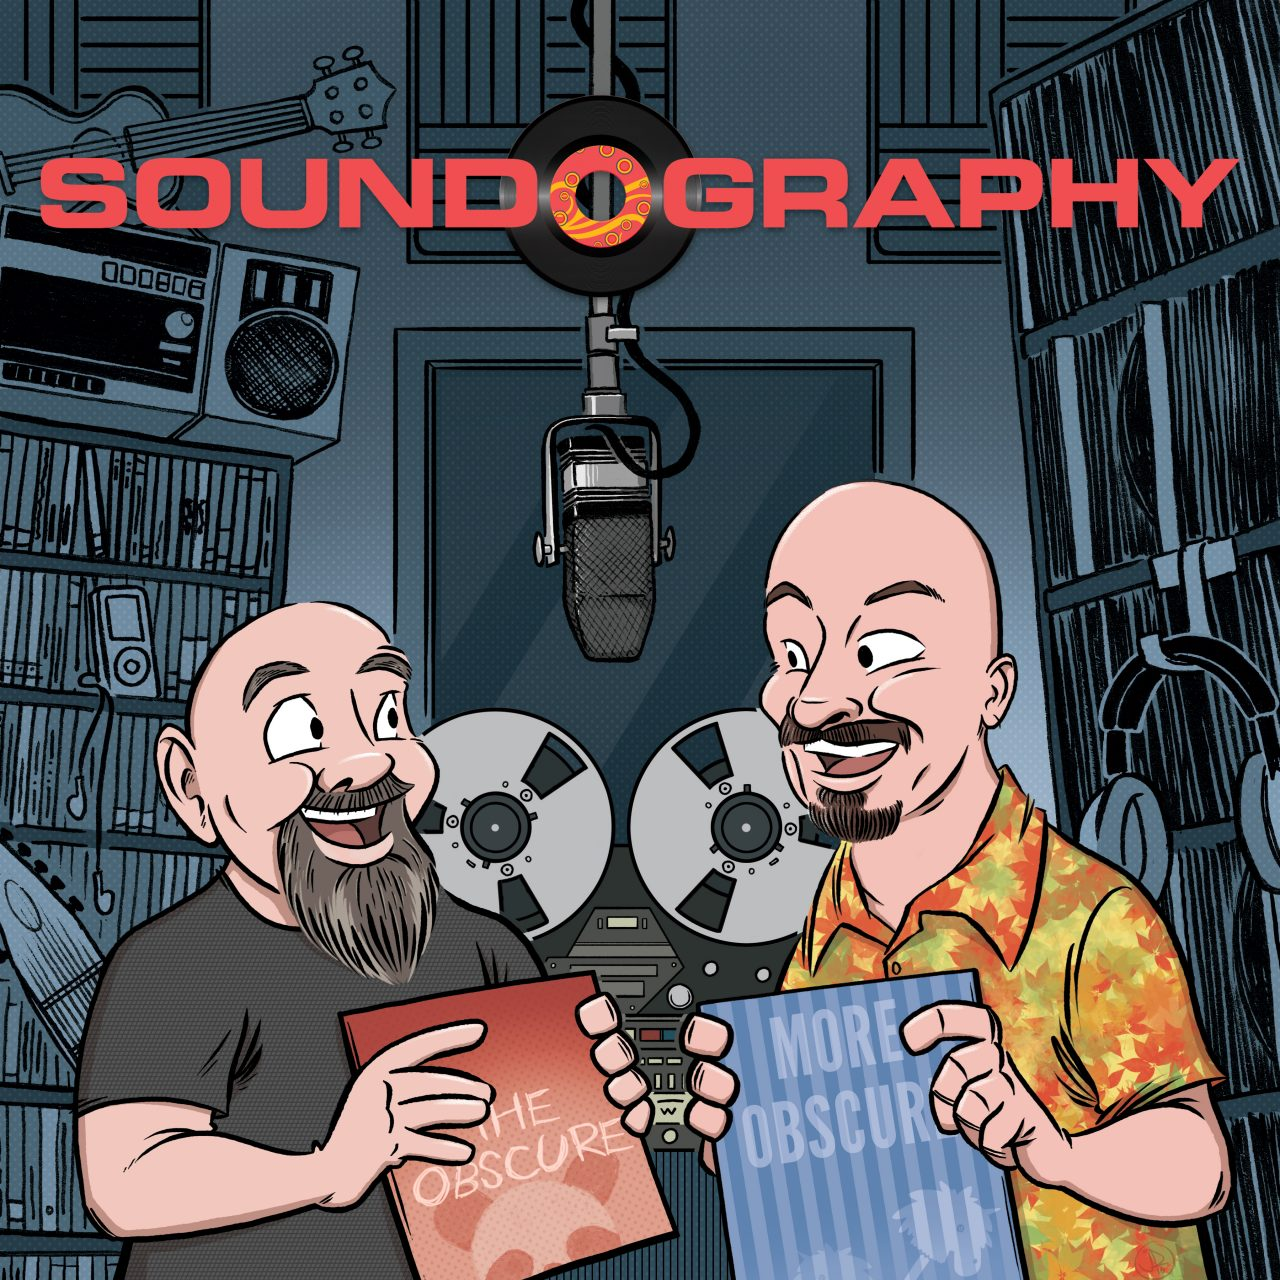 Soundography-iTunes-Album-Art-3600x3600